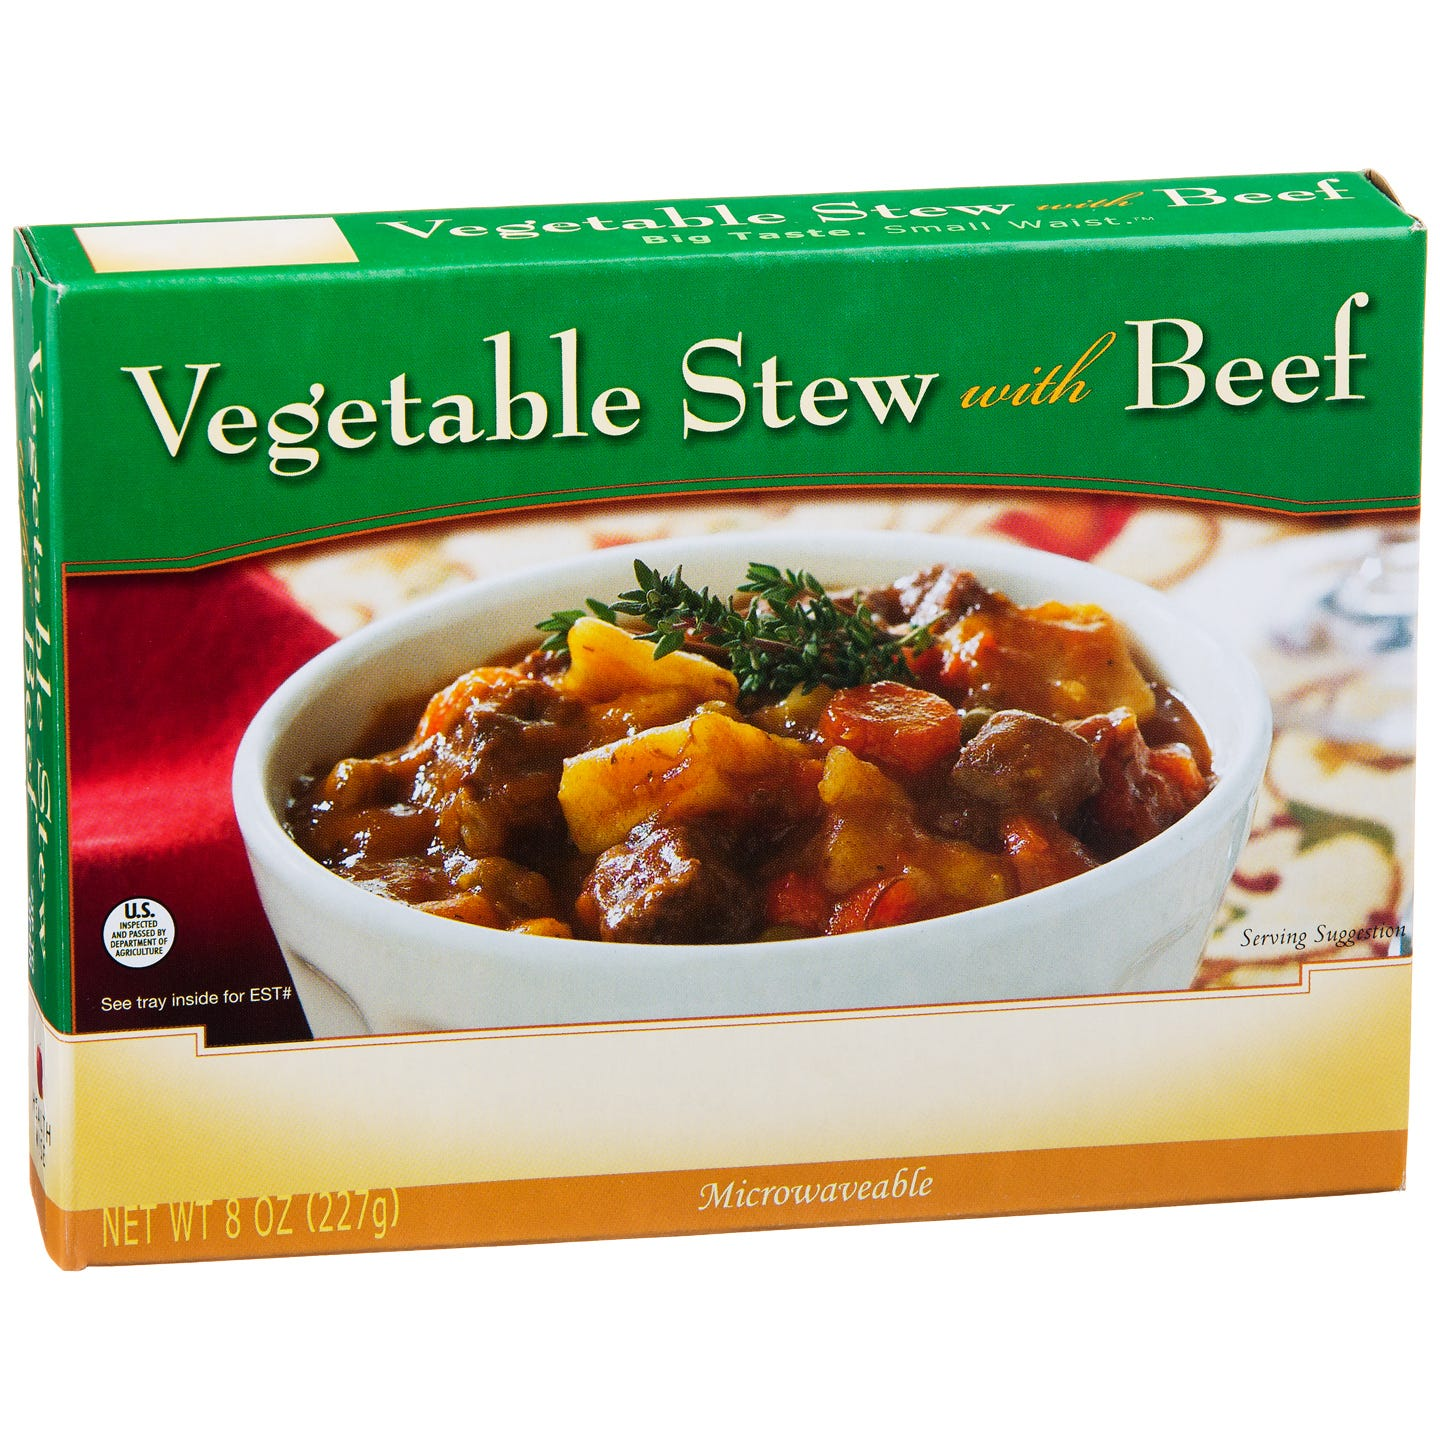 BariWise Low Calorie Meals, Vegetable Stew with Beef